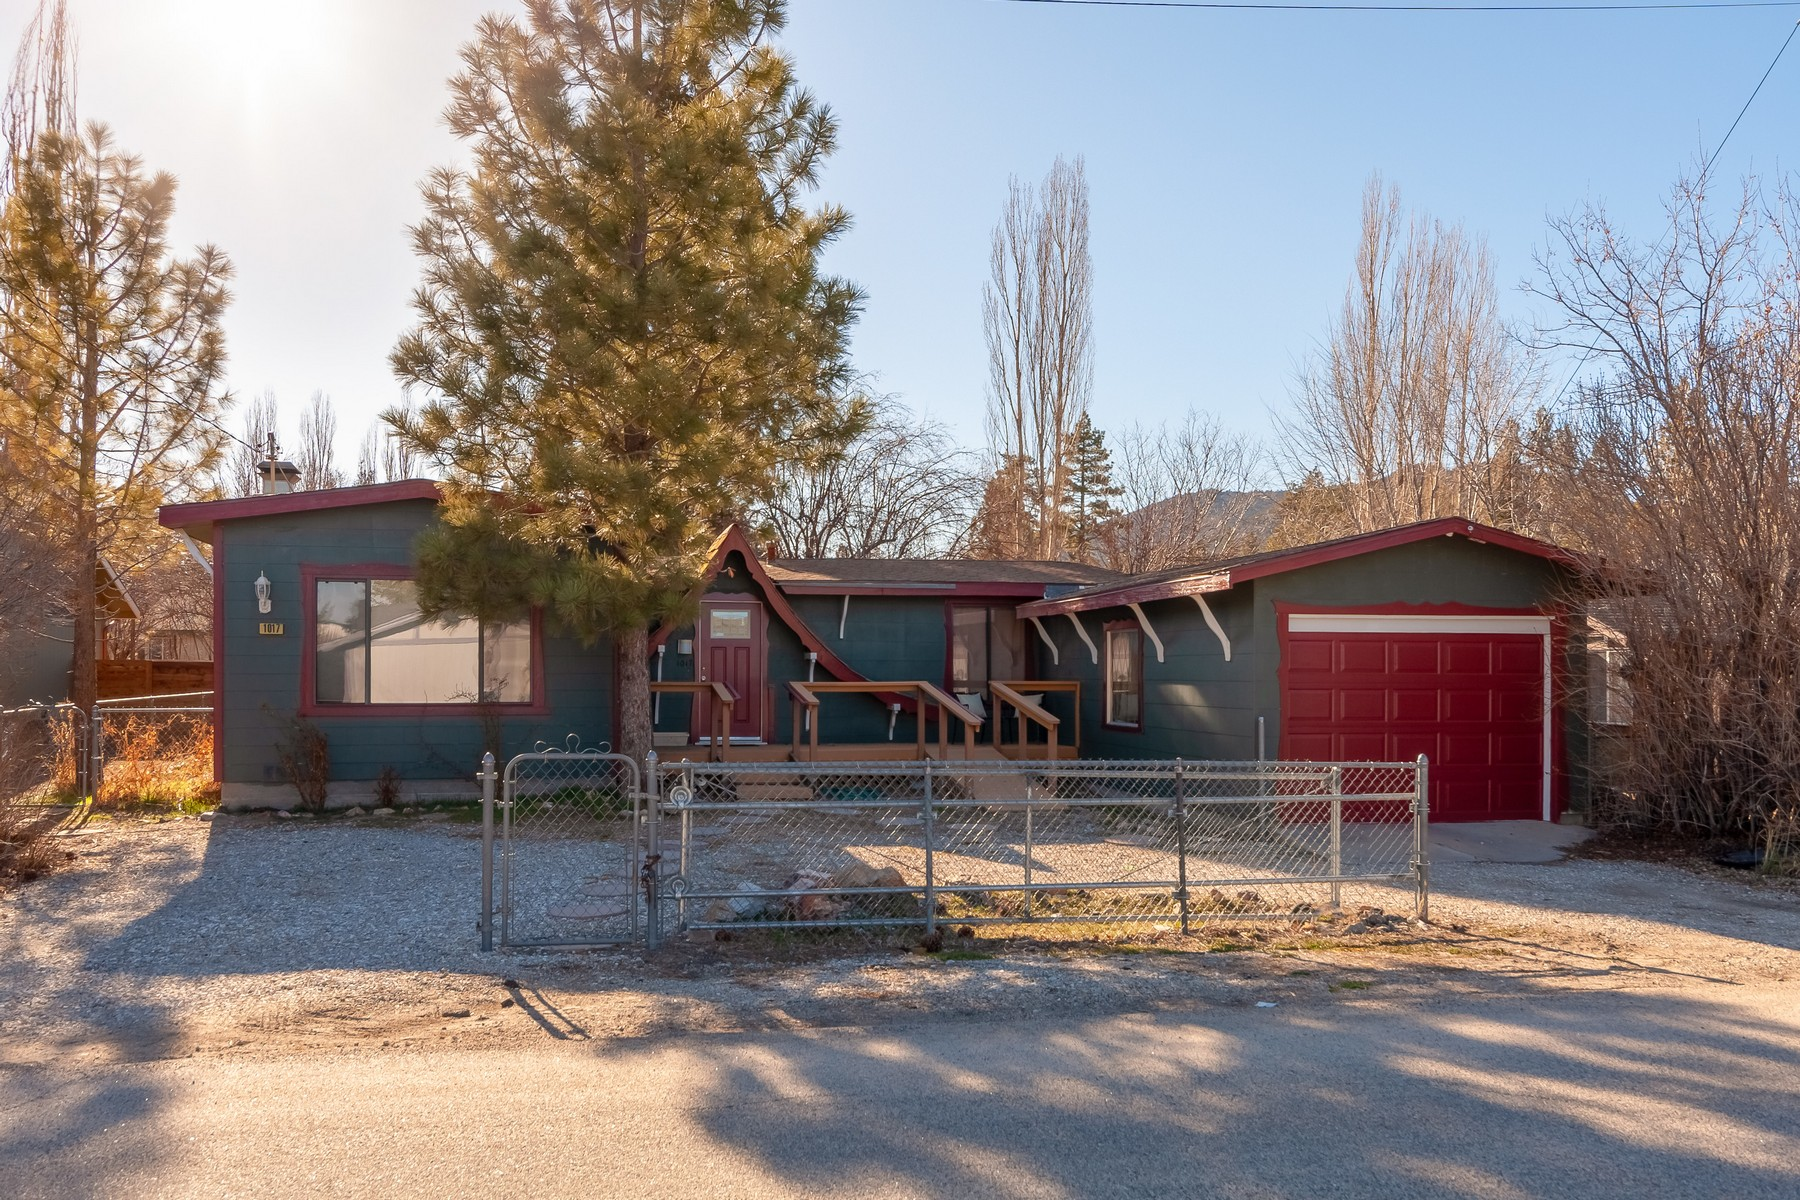 Single Family Homes for Active at 1017 Mount Doble Drive, Big Bear City, California 92314 1017 Mount Doble Drive Big Bear City, California 92314 United States